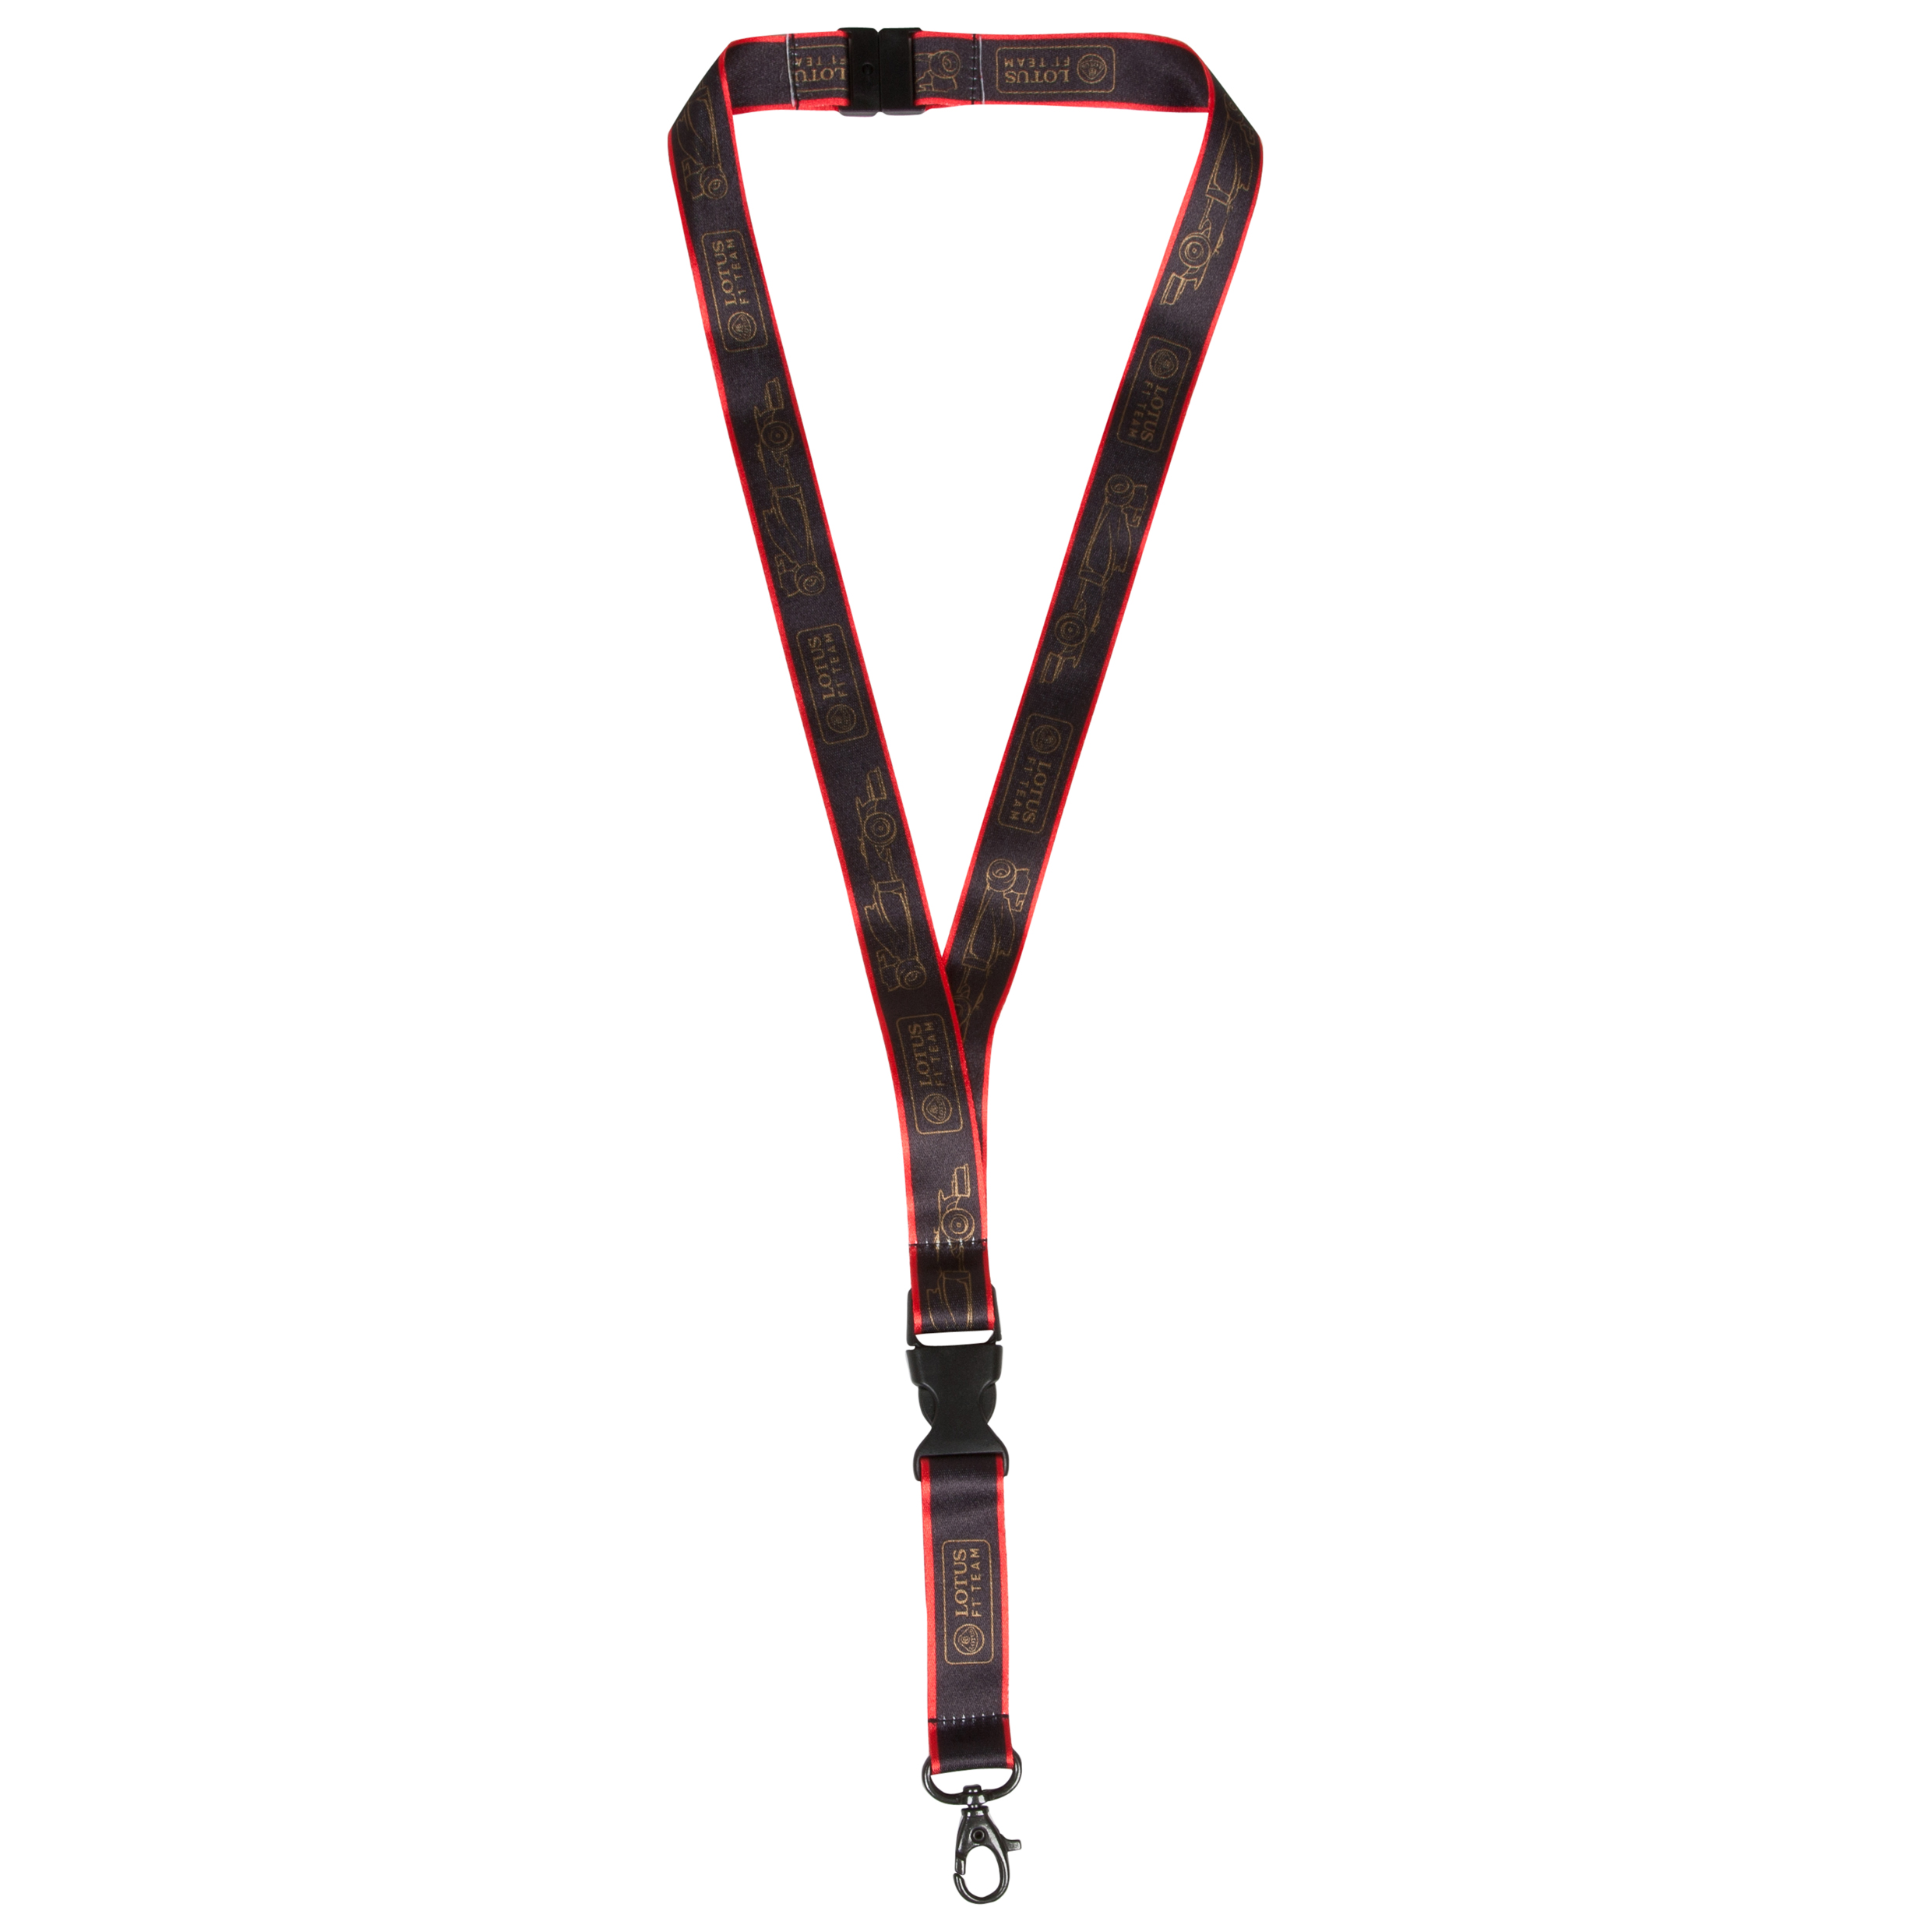 Lotus F1 Team 2013 F1 Team Lanyard